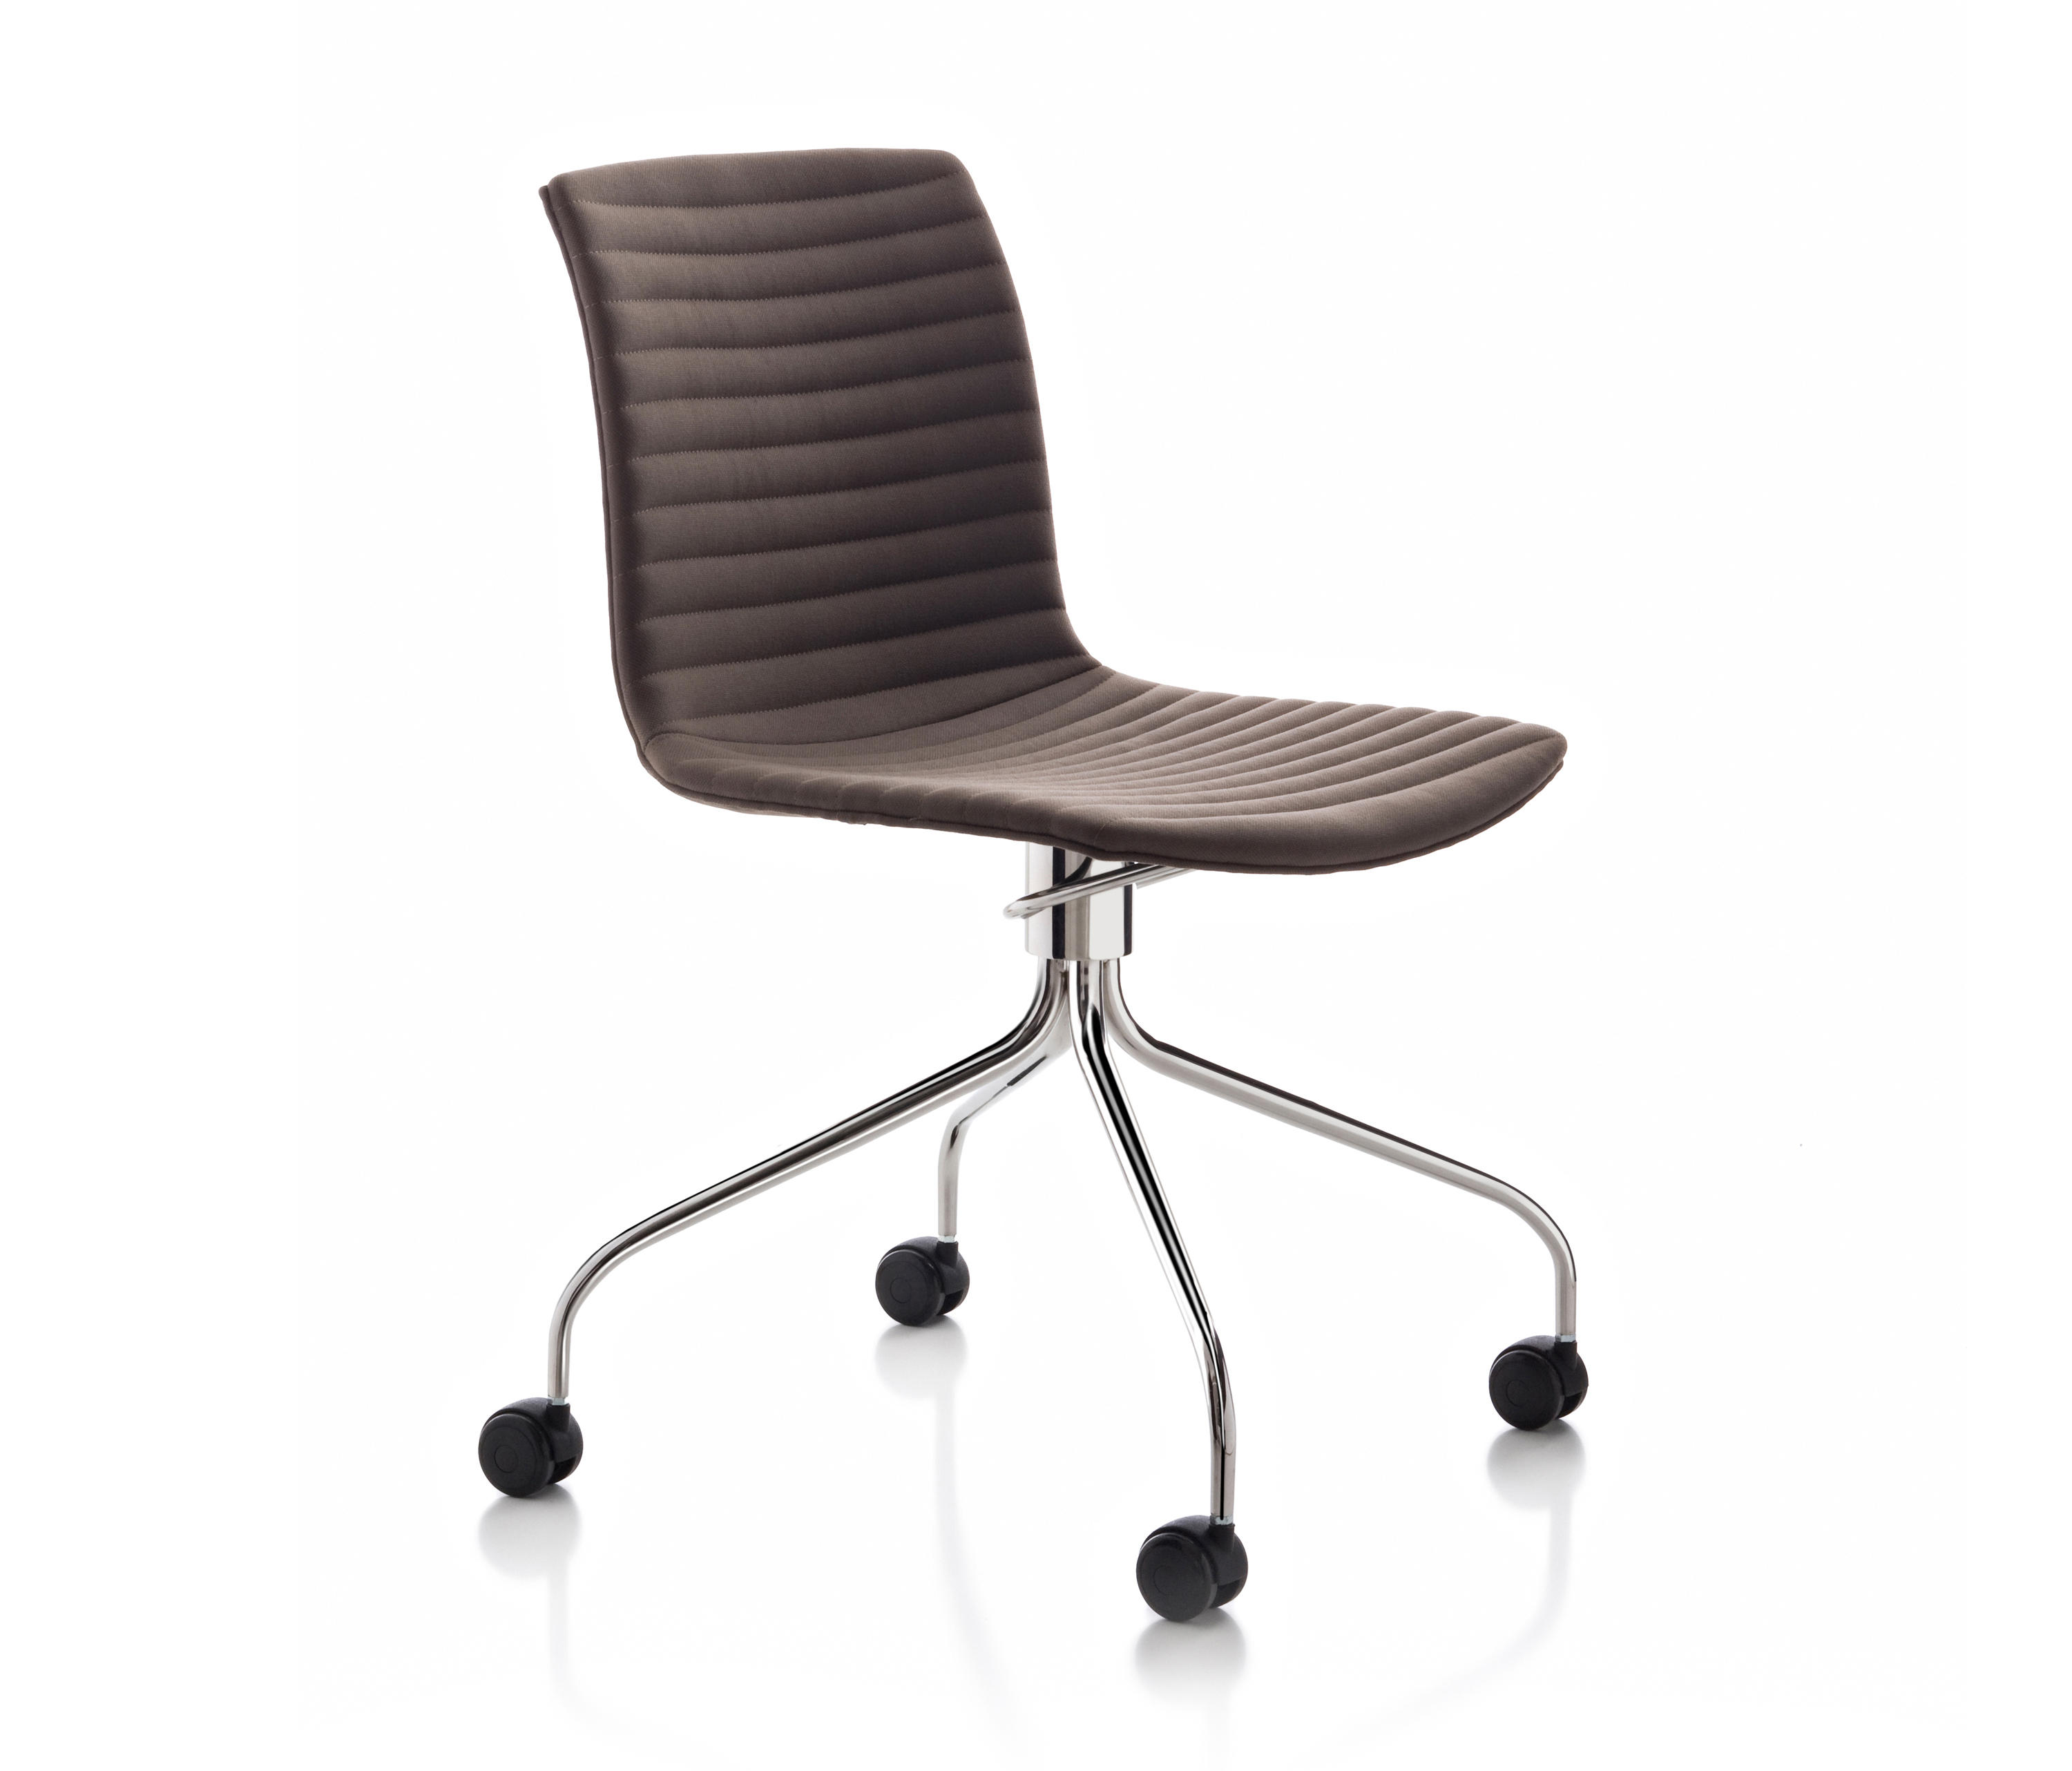 ergonomic chair data herman miller chairs vintage dtr1x4 office from fornasarig architonic